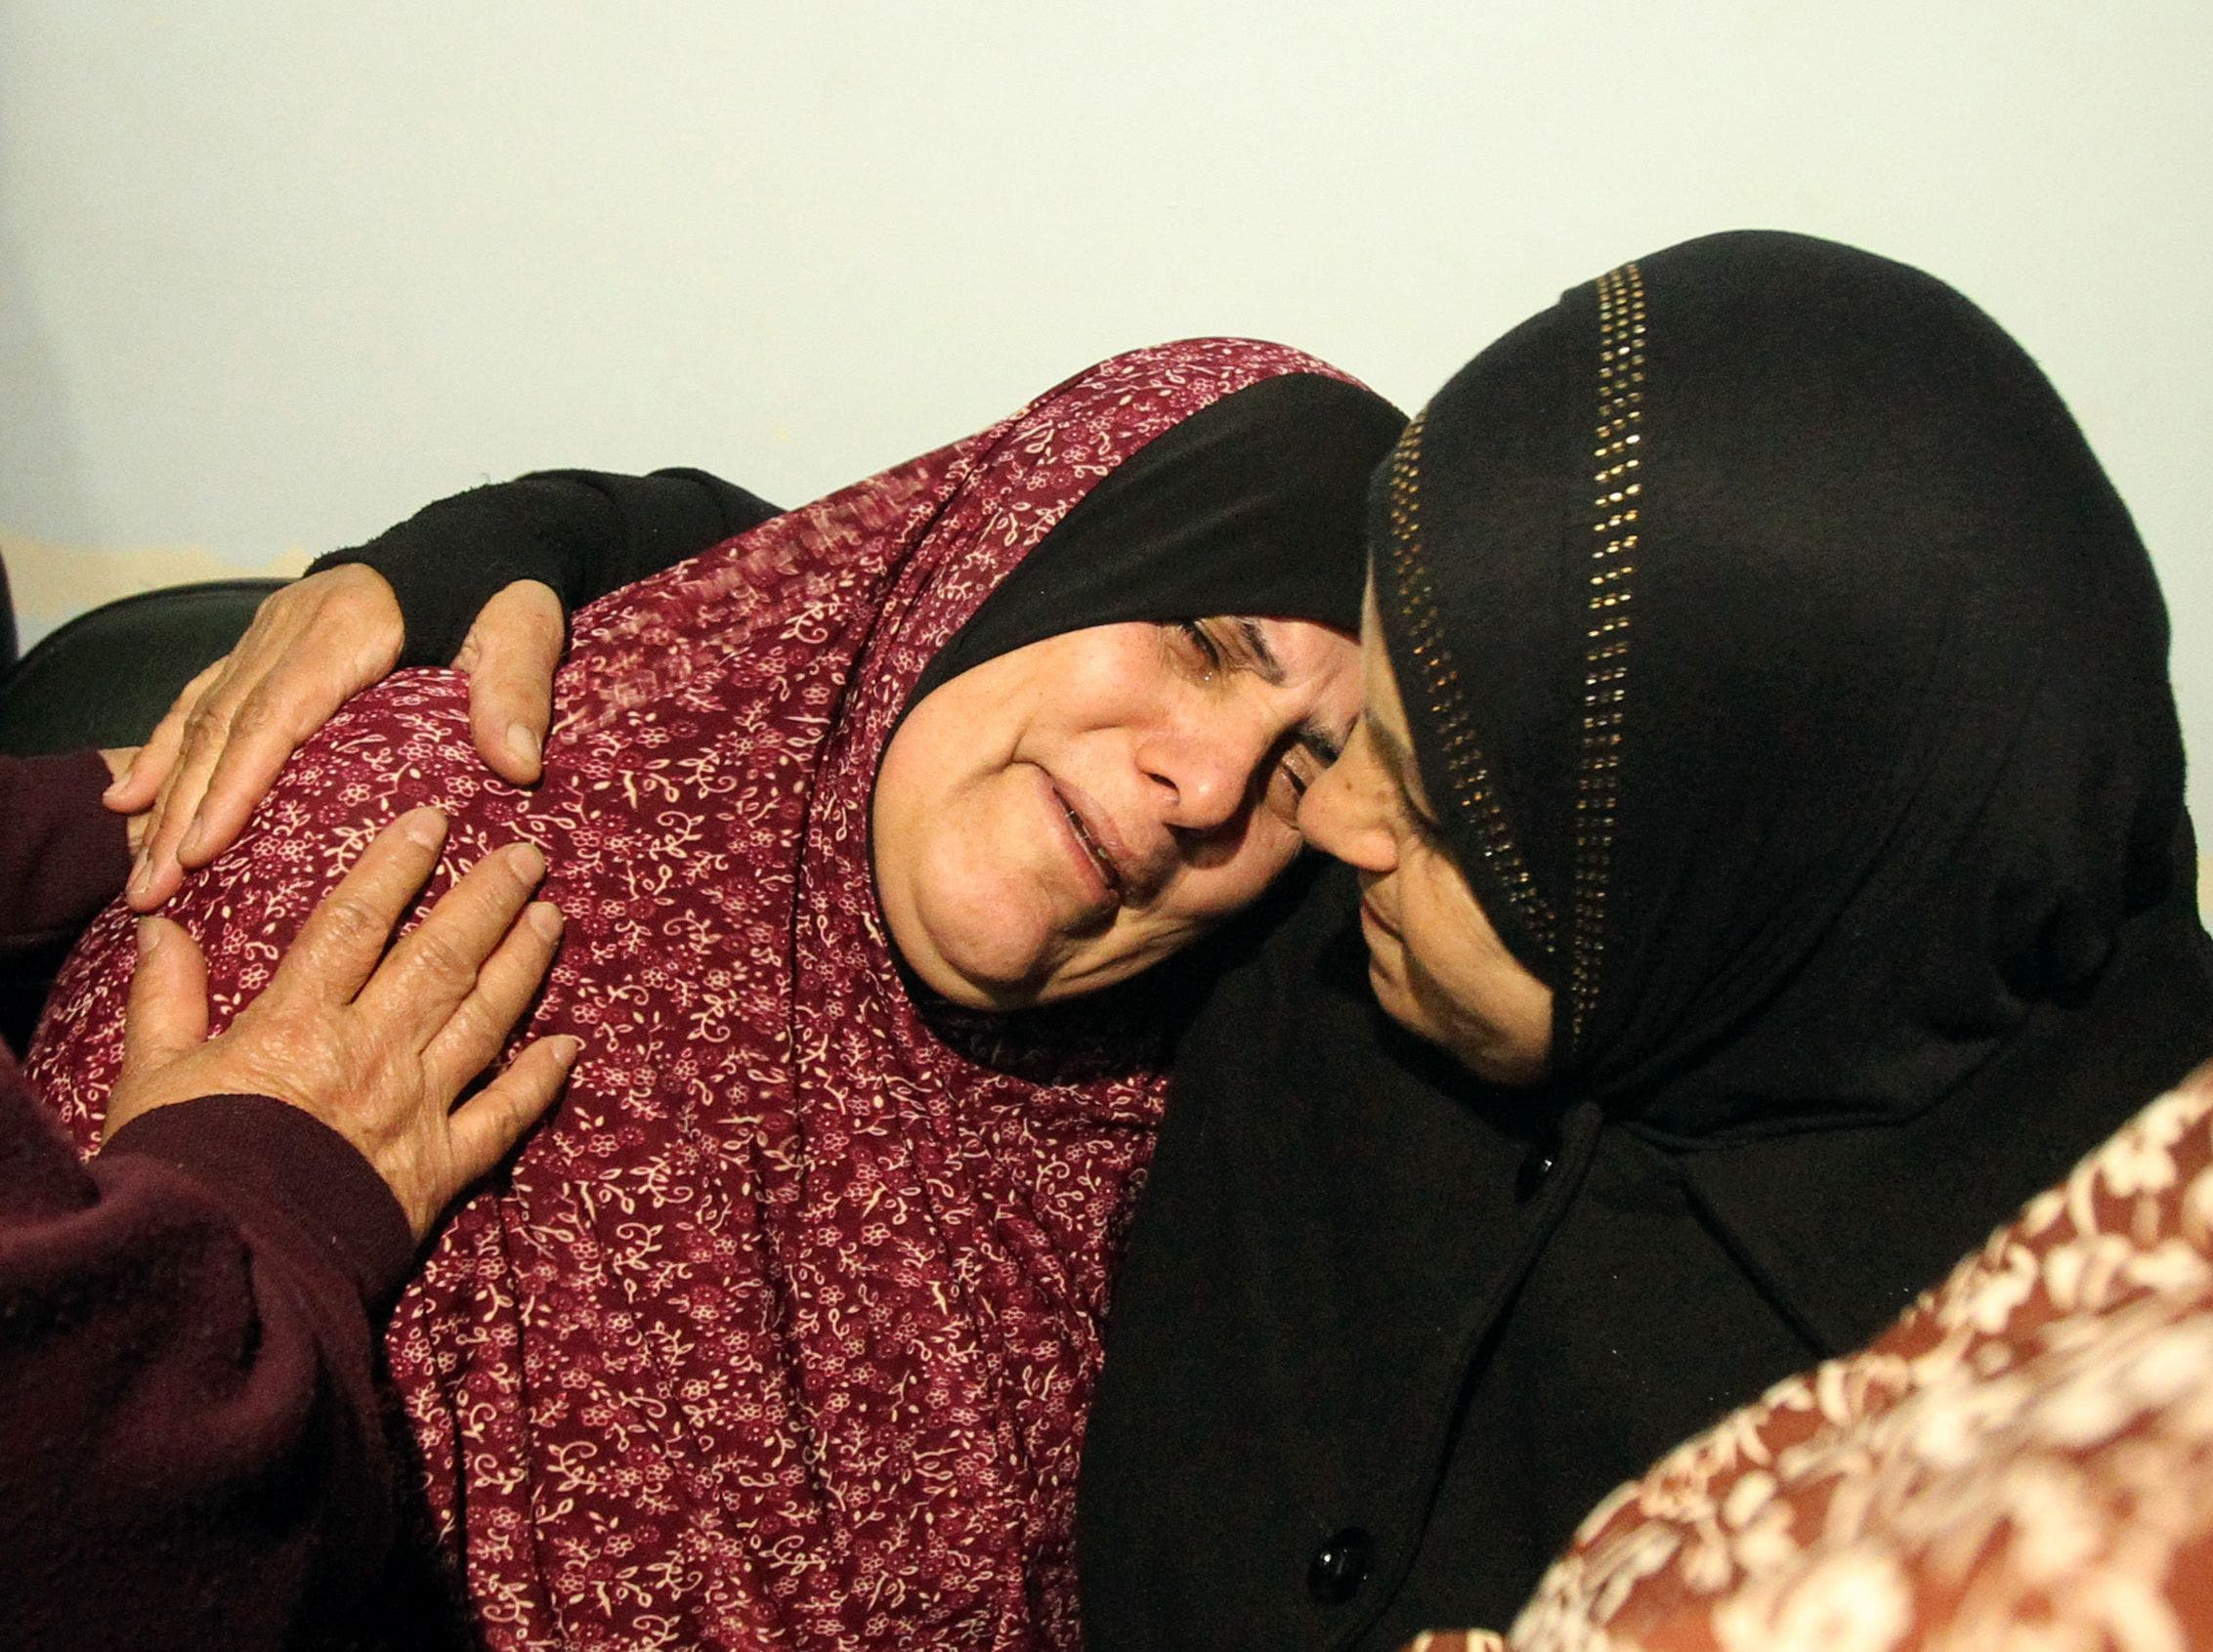 The mother (L) of Palestinian youth Omar Maddi, 16, is comforted by a relative as she mourns the death of her son in the al-Mizan hospital in the West Bank city of Hebron on February 10, 2016 after he was killed during clashes with Israeli security forces in the area of the Al-Arroub refugee camp. afp